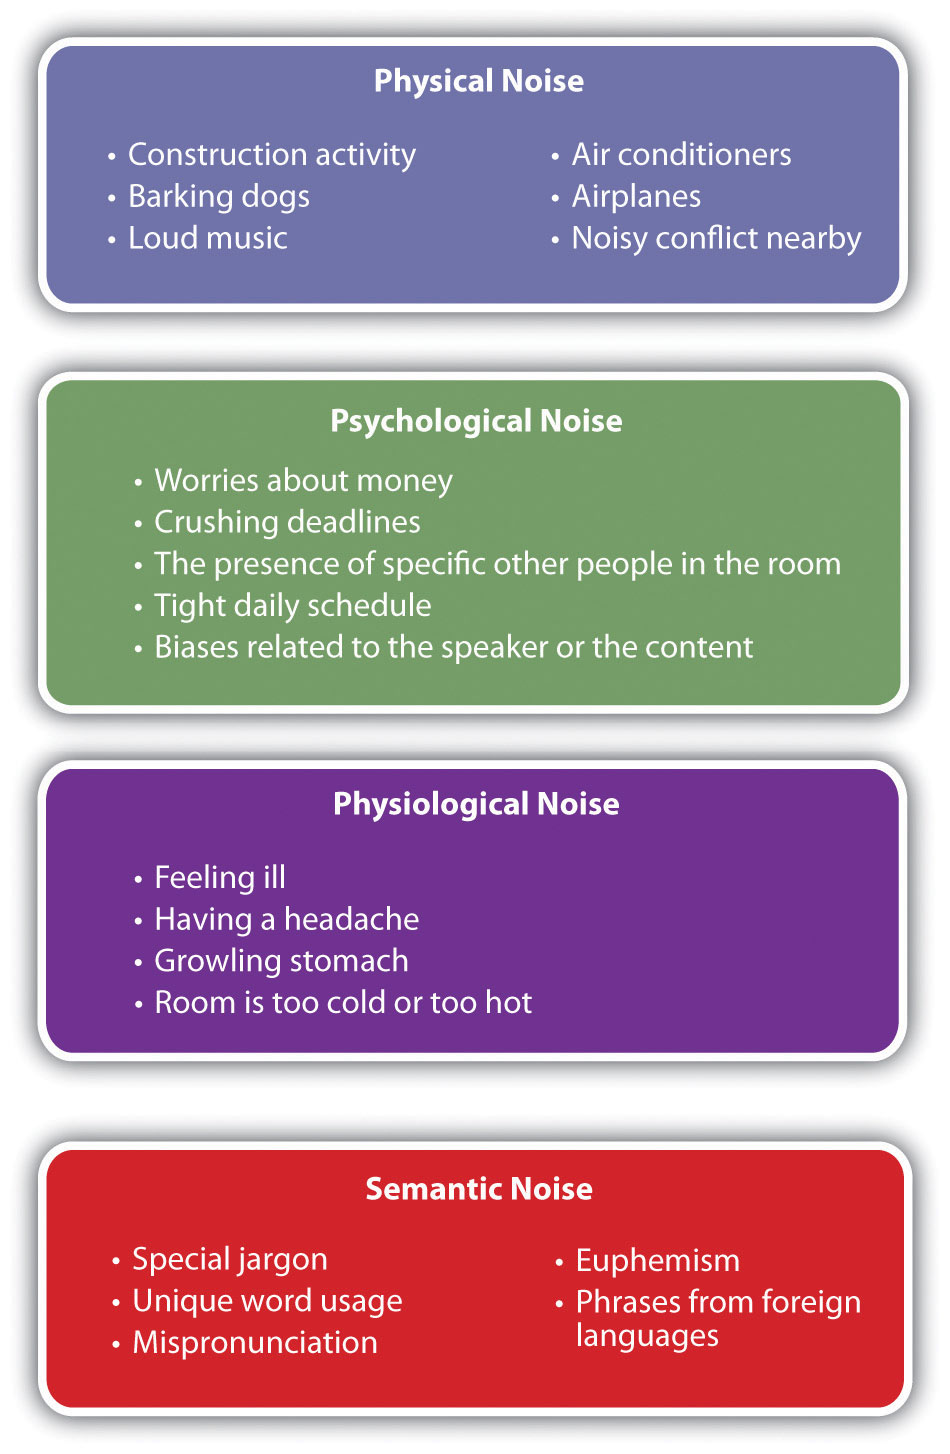 Types of Noise: Physical (Construction activity, barking dogs, loud music, air conditioners, airplanes, noisy conflict nearby), Psychological (Worries about money, crushing deadlines, the presence of specific other people in the room, tight daily schedule, biases related to the speaker or the content), Physiological (Feeling ill, having a headache, growling stomach, room is too cold or too hot), and Semantic (Special jargon, unique word usage, mispronunciation, euphemism, phrases from foreign languages)